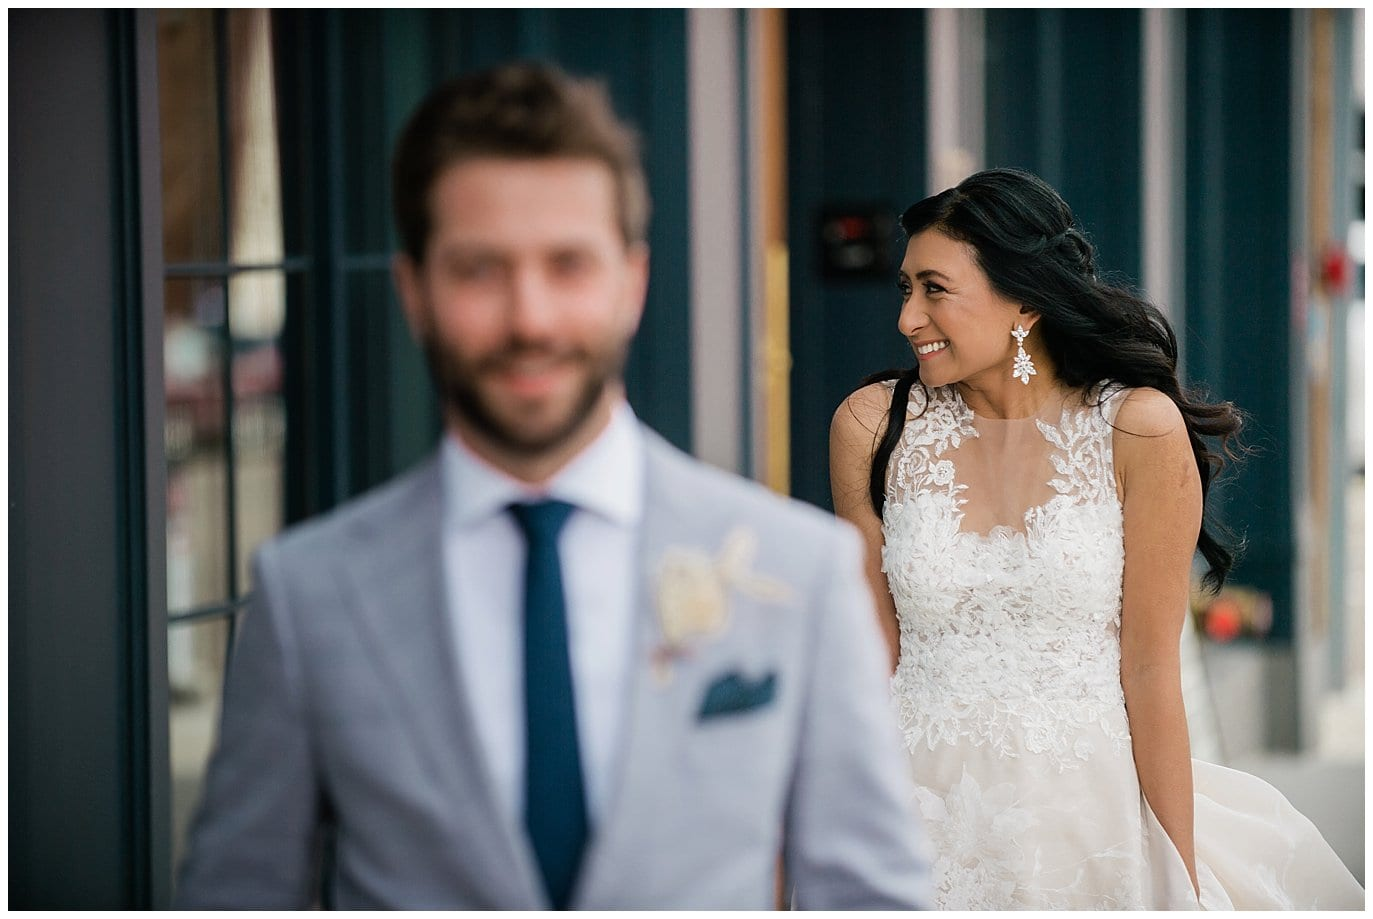 First look at the Ramble Hotel Denver by Blanc Wedding Photographer Jennie Crate